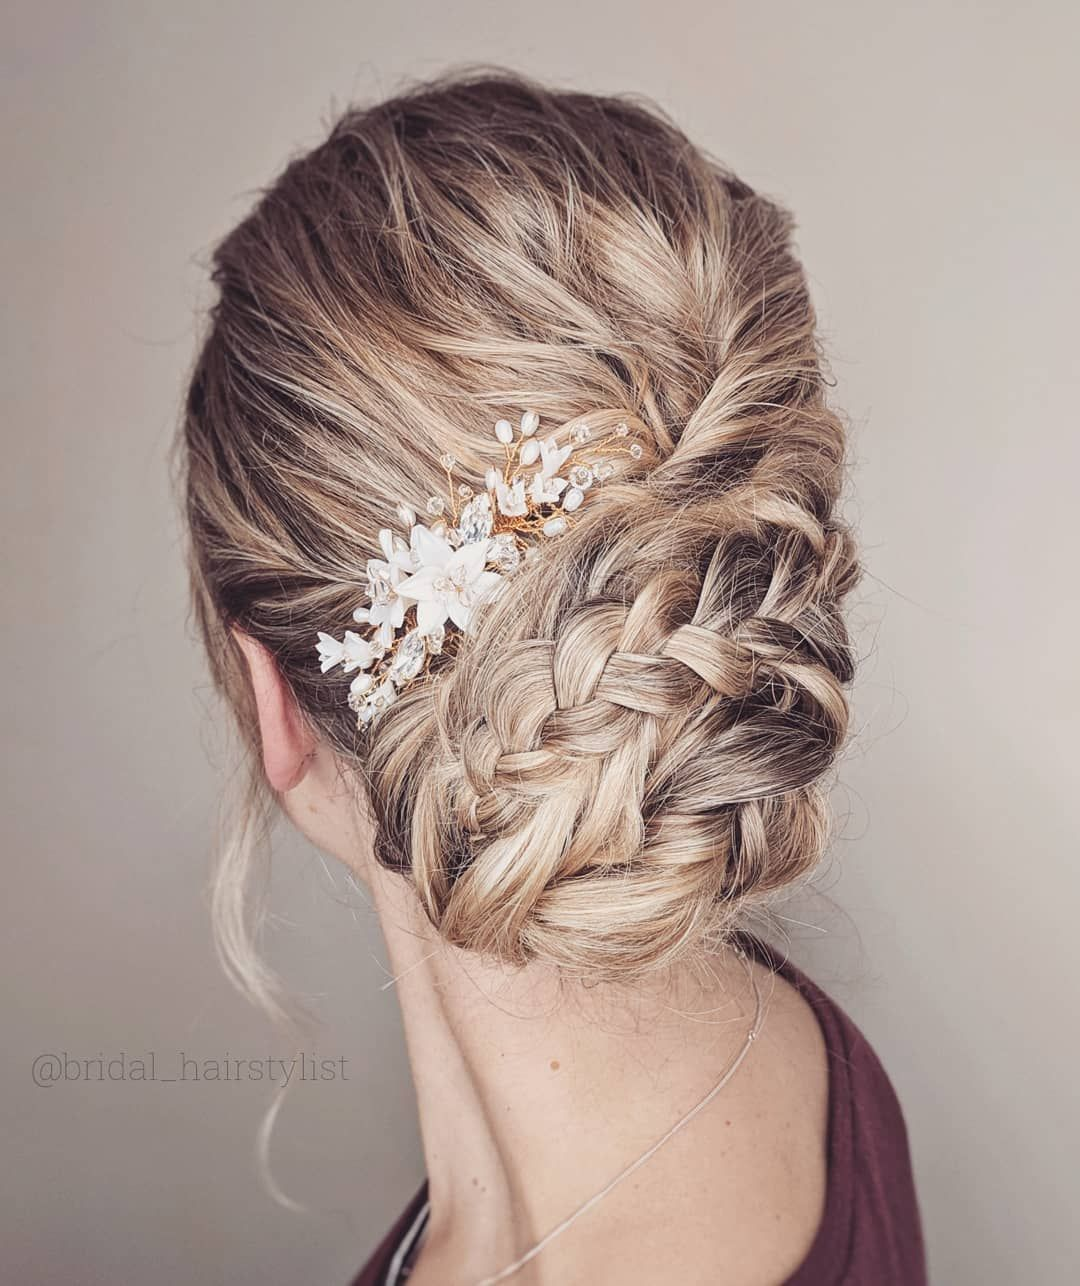 55 Amazing updo hairstyle with the wow factor - braided updo hairstyle ,swept back bridal hairstyle ,updo hairstyles ,wedding hairstyles #weddinghair #hairstyles #updo